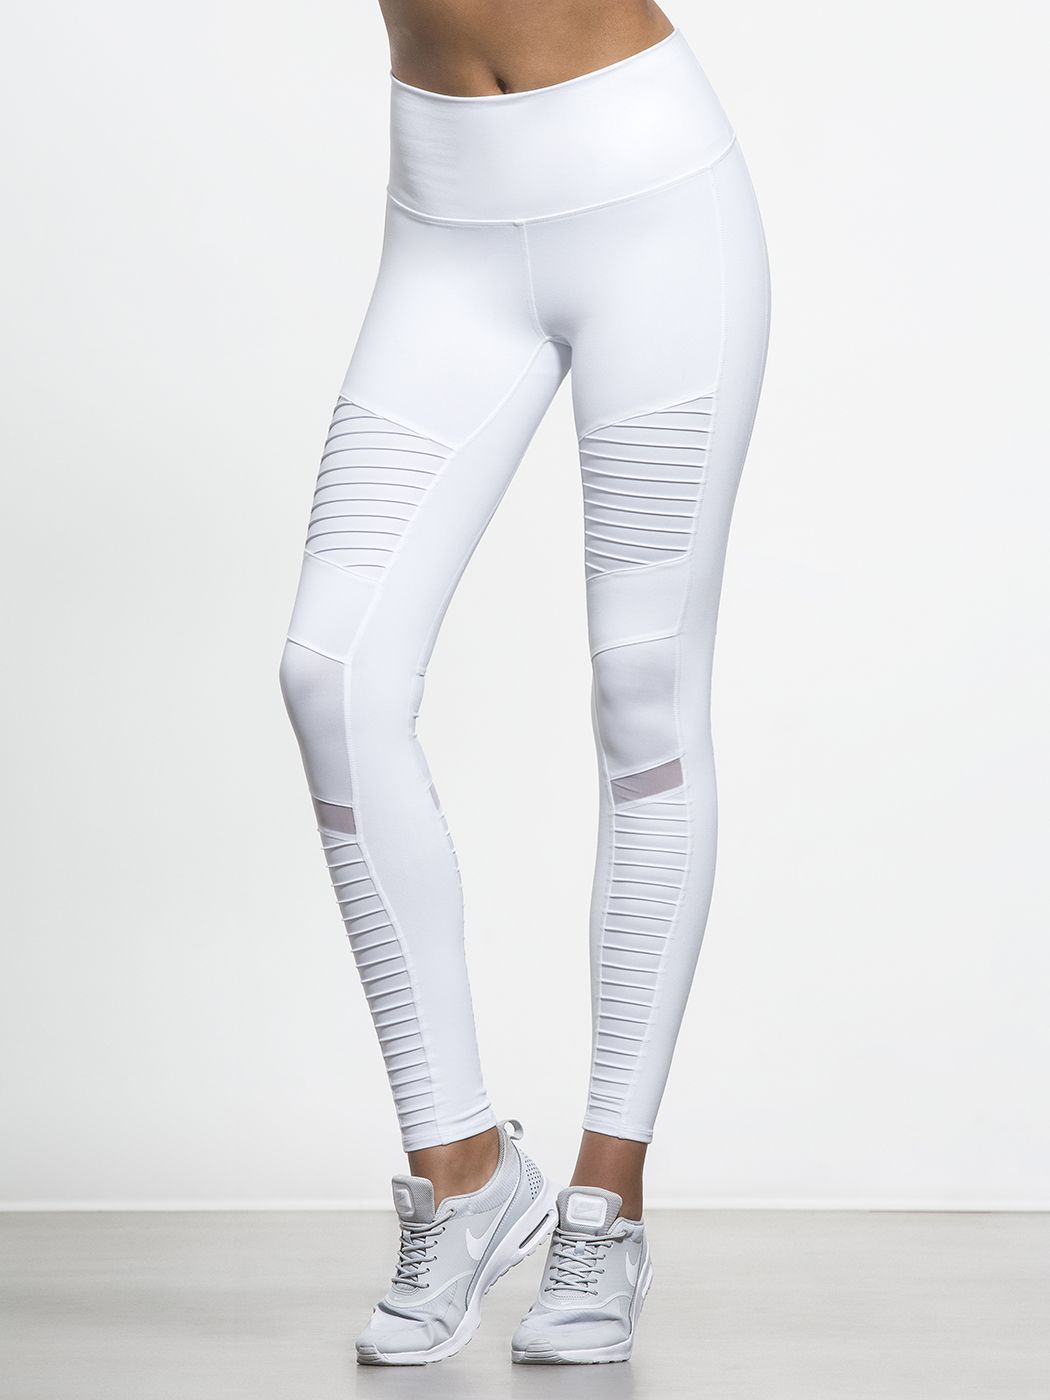 074be85151e8b High Waisted Moto Legging | For the fashionista in me! | Mesh yoga ...